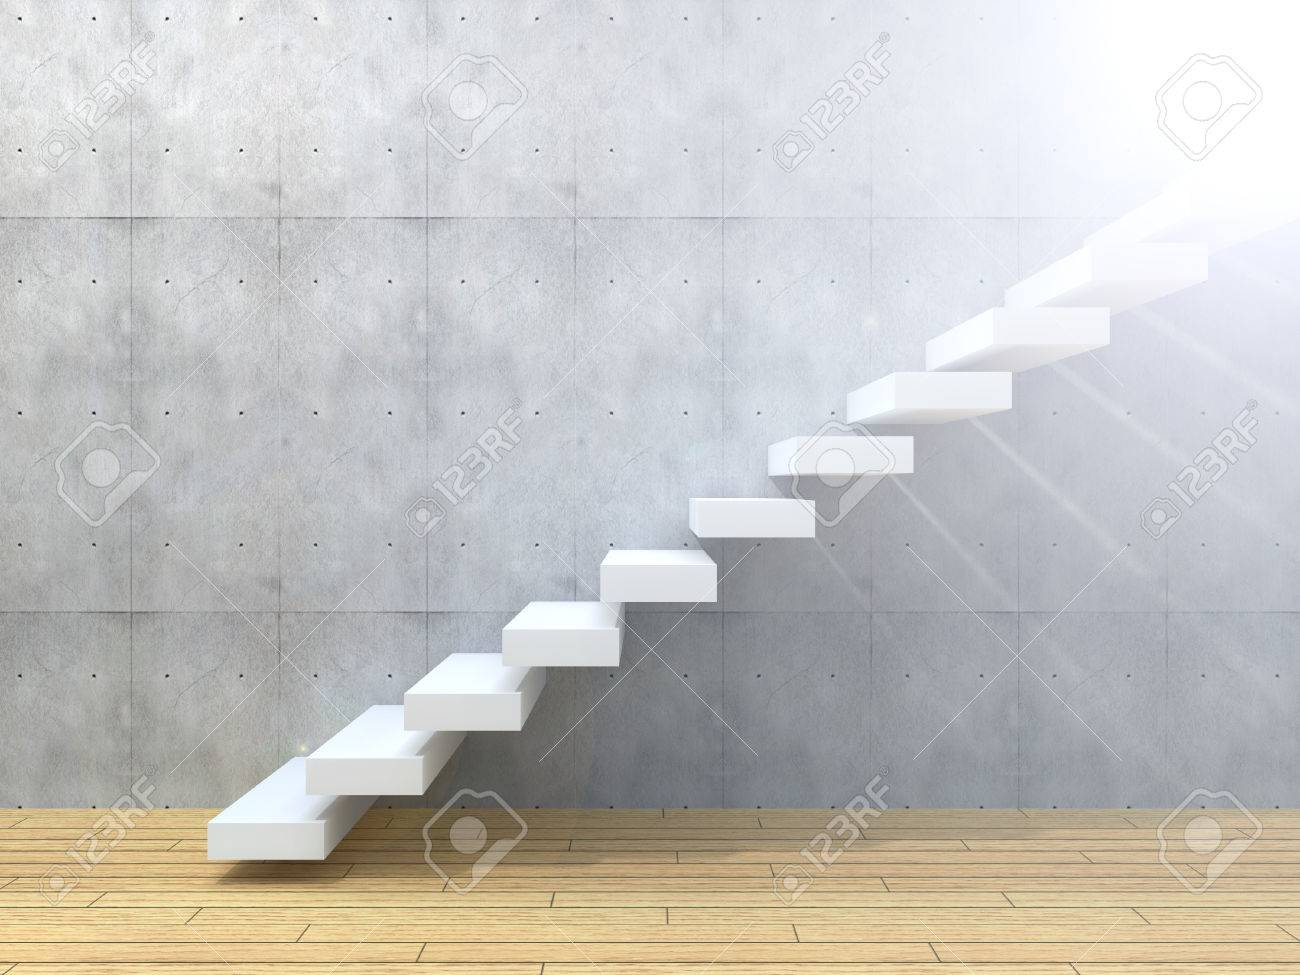 Conceptual White Stone Or Concrete Stair Or Steps Near A Wall Background  Stock Photo   50904904